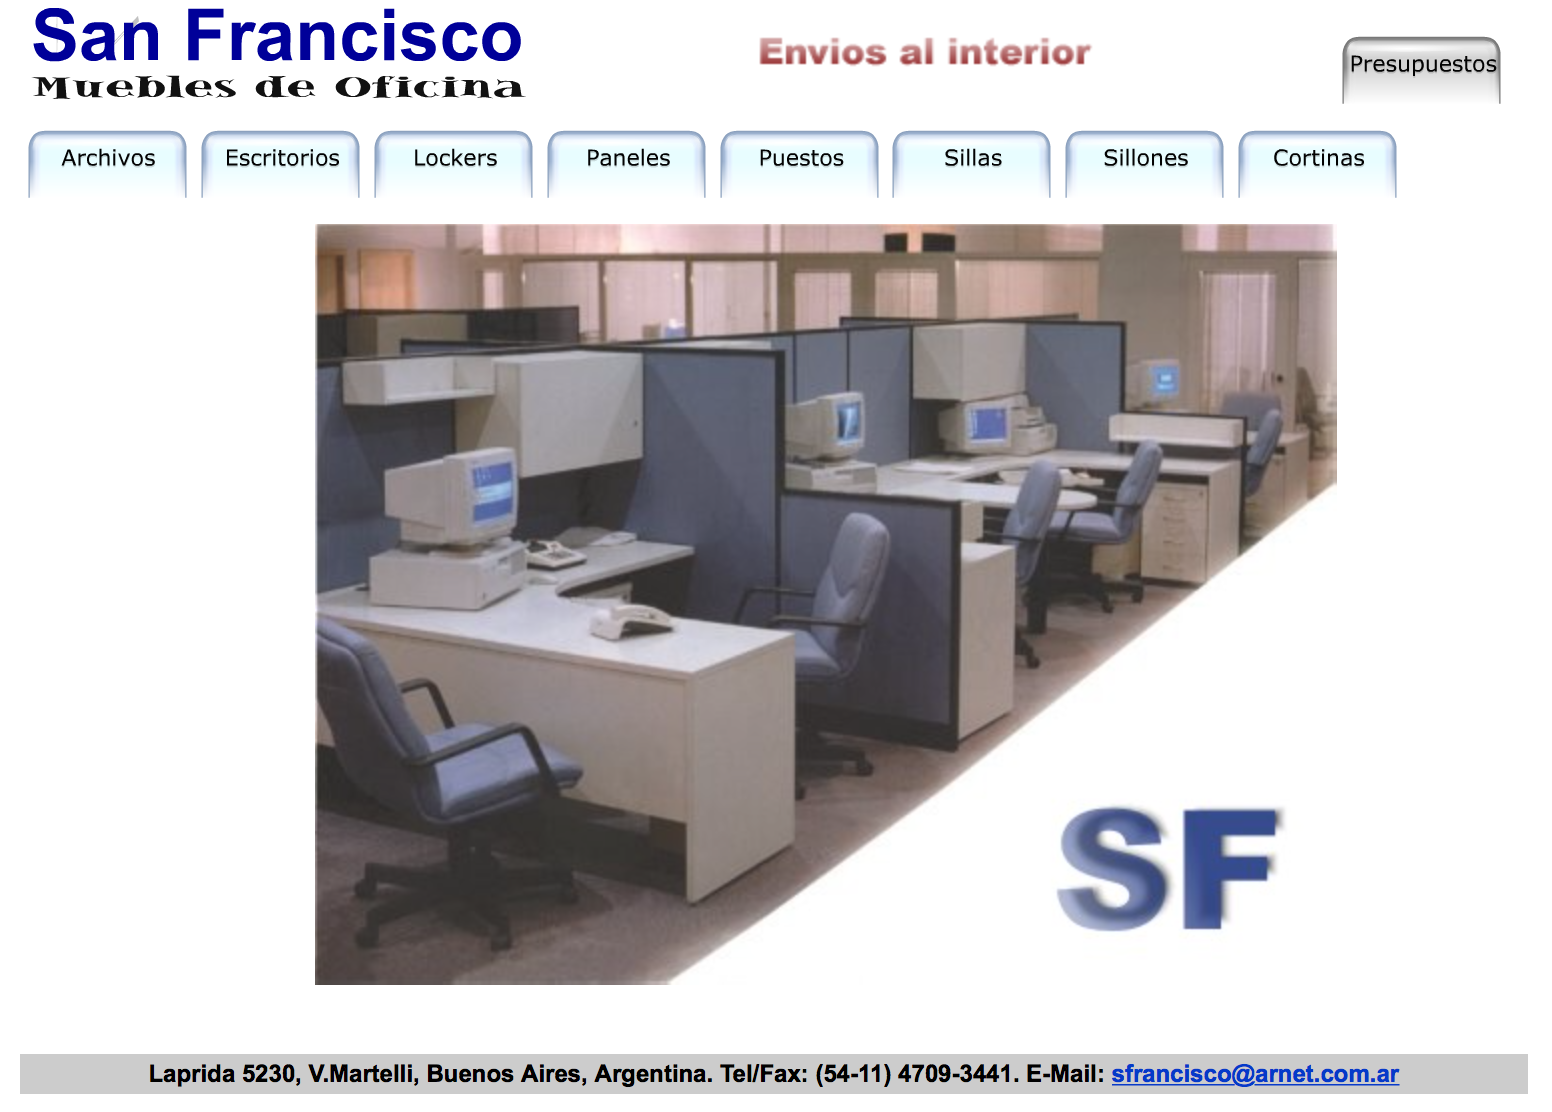 San francisco muebles a website from the 90 s lantean for Muebles san francisco